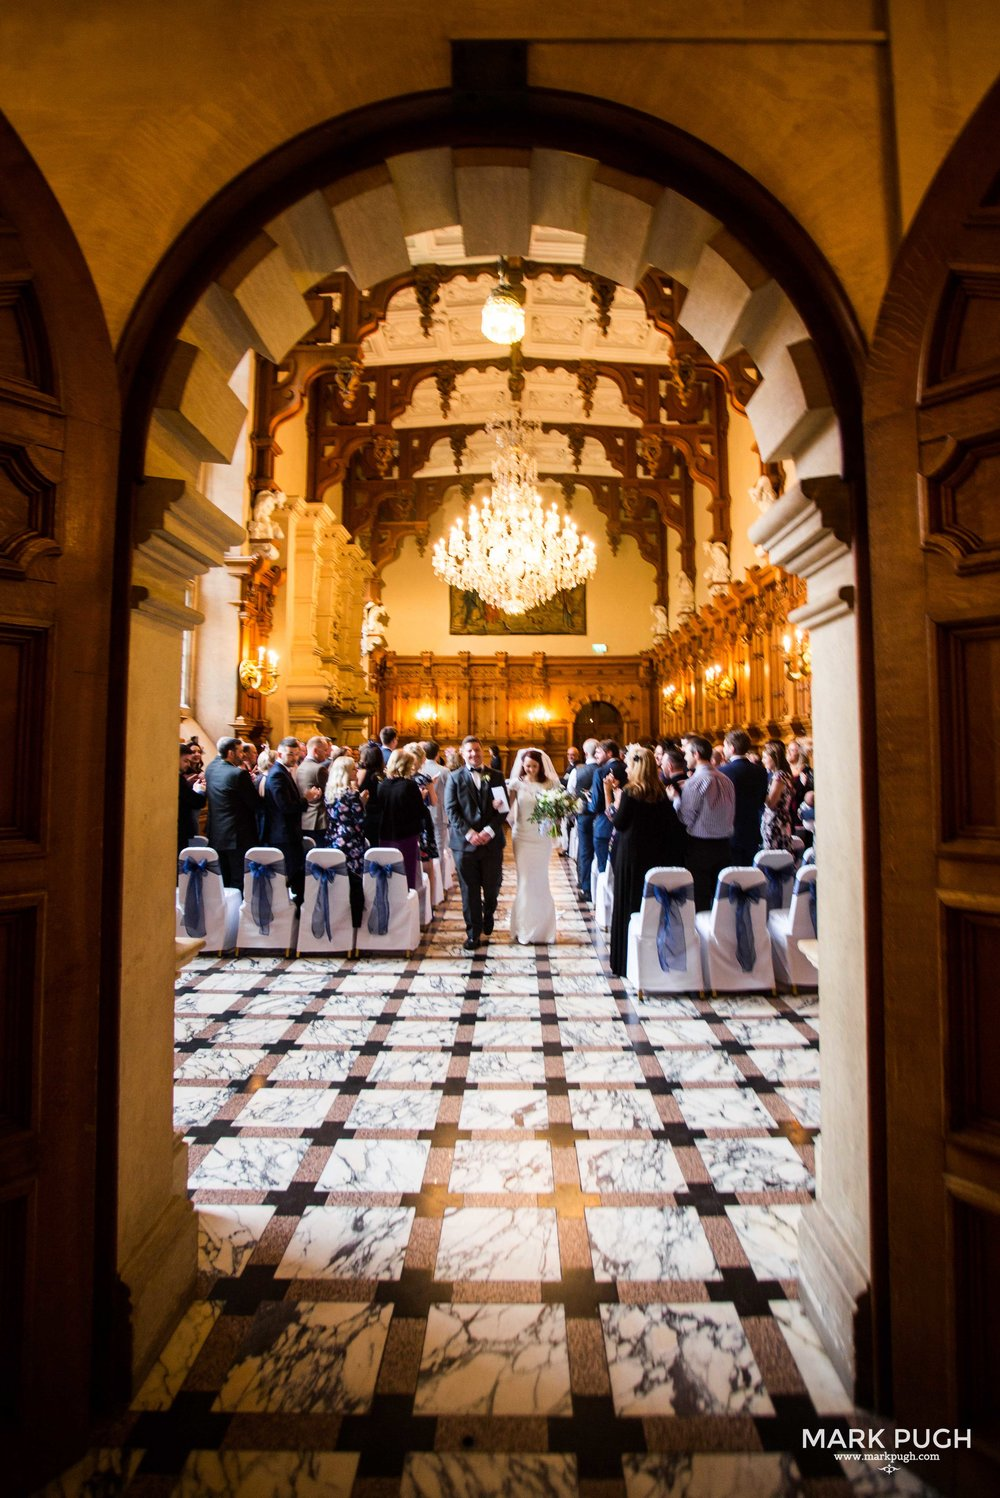 063 - Lauren and Sam - fineART wedding photography at Harlaxton Manor by www.markpugh.com Mark Pugh of www.mpmedia.co.uk_.JPG